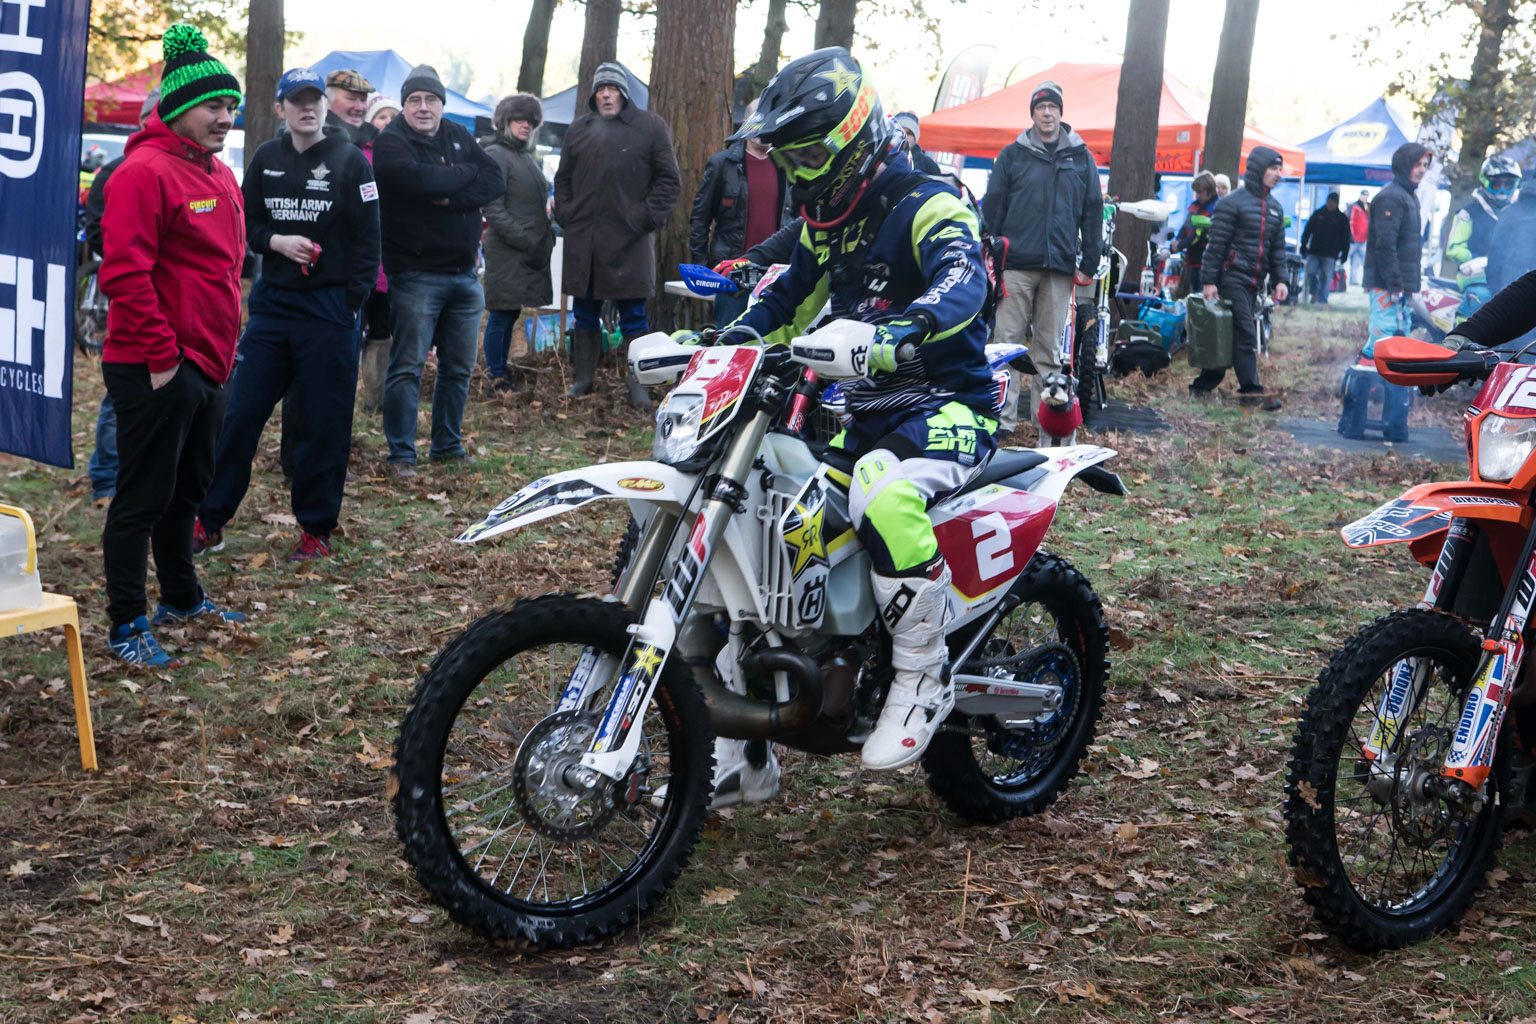 Daniel McCanney (Rockstar Husqvarna) At the start when his bike wouldn't start